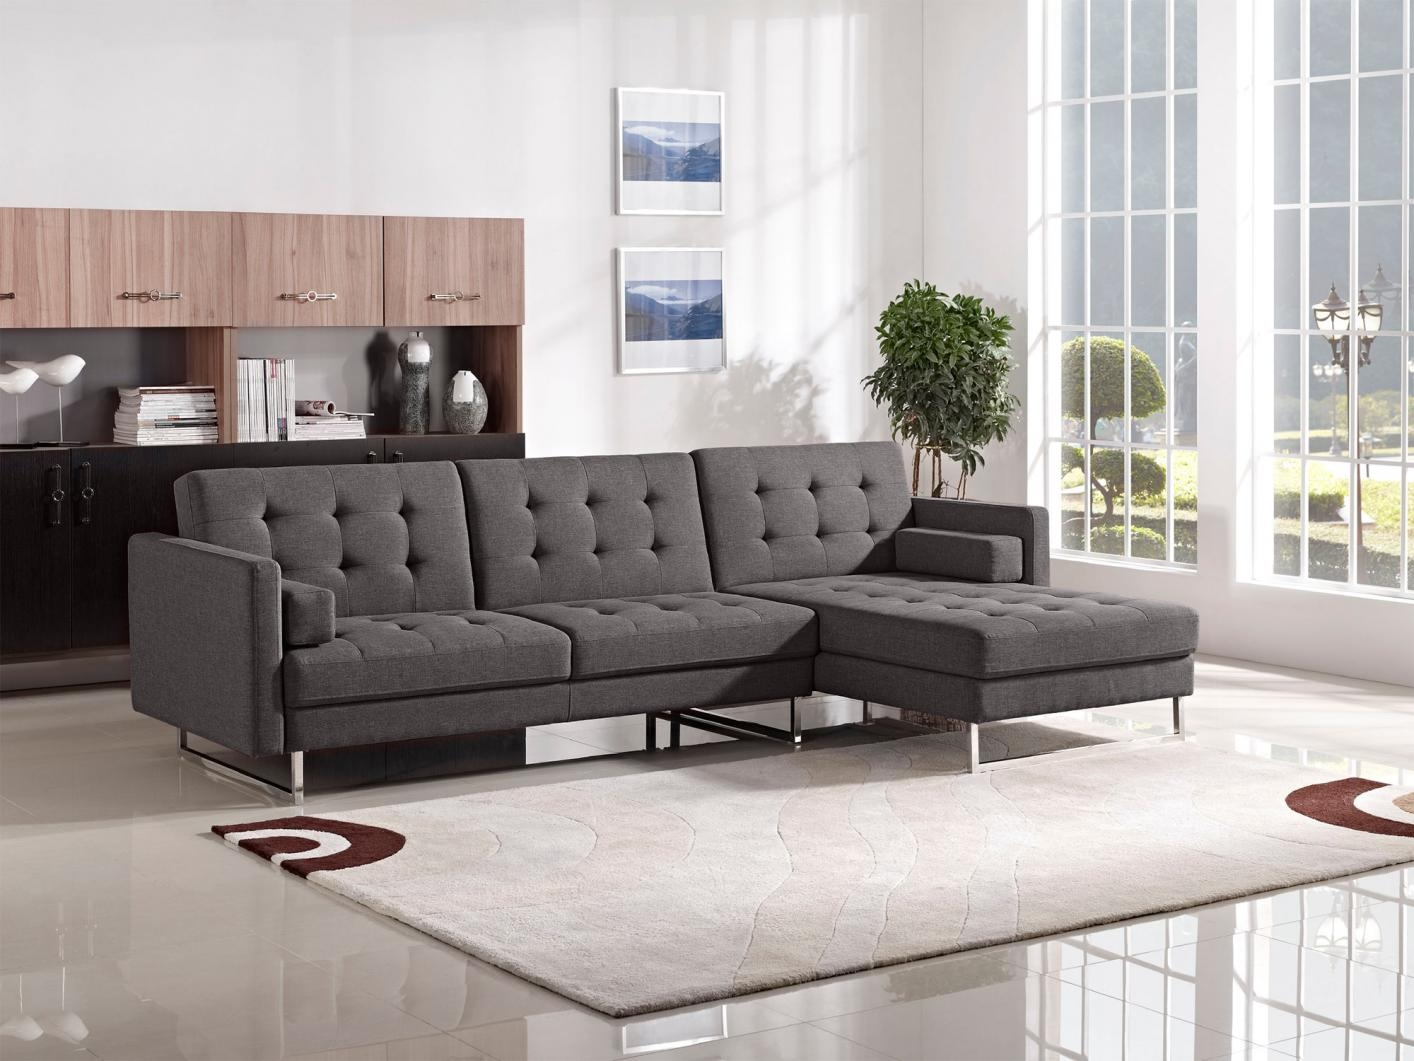 Popular Photo of Fabric Sectional Sofa